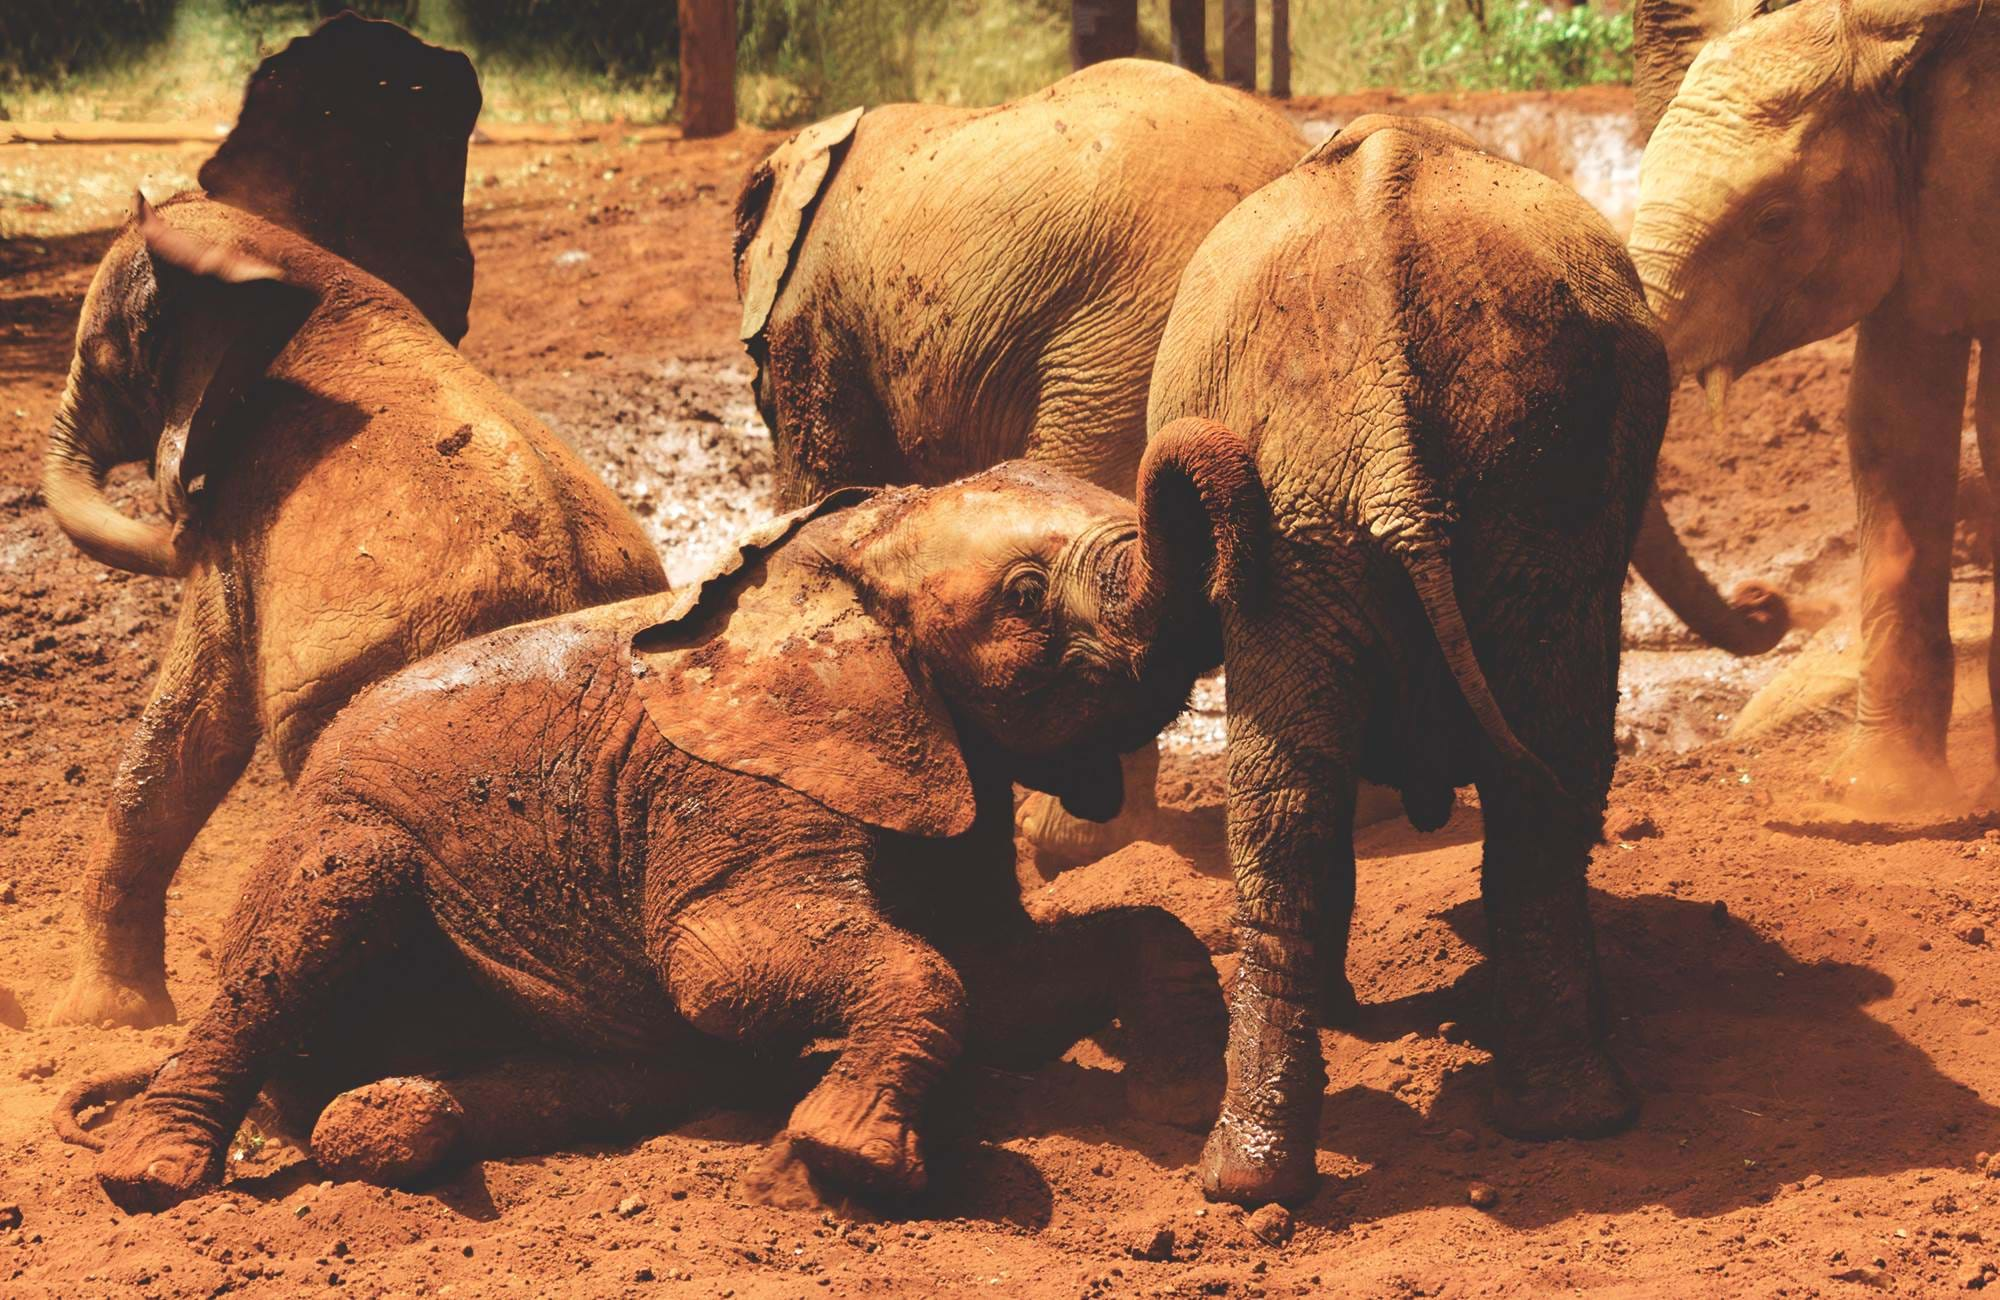 nairobi-kenya-sheldrick-elephant-orphanage-baby-elephants-playing-cover